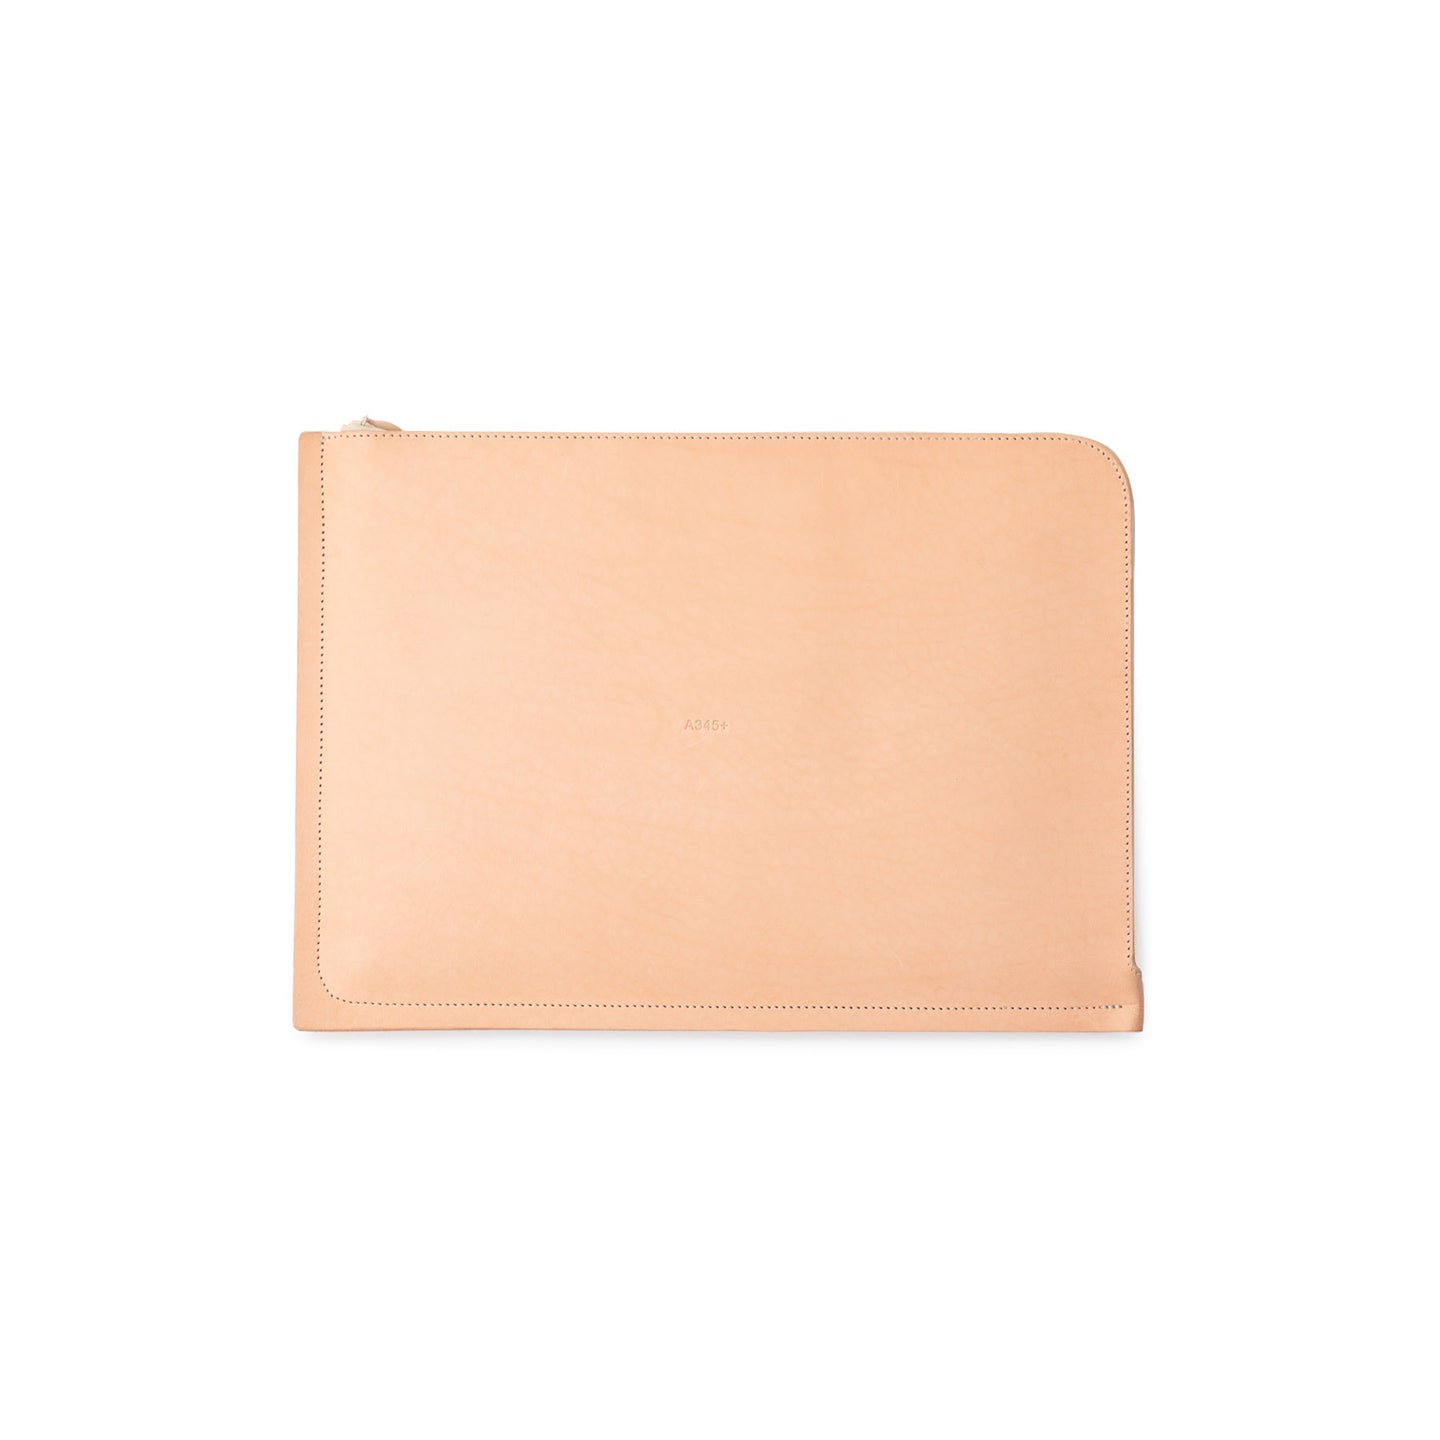 newest collection vast selection amazing selection C4 Leather MacBook Pro 13